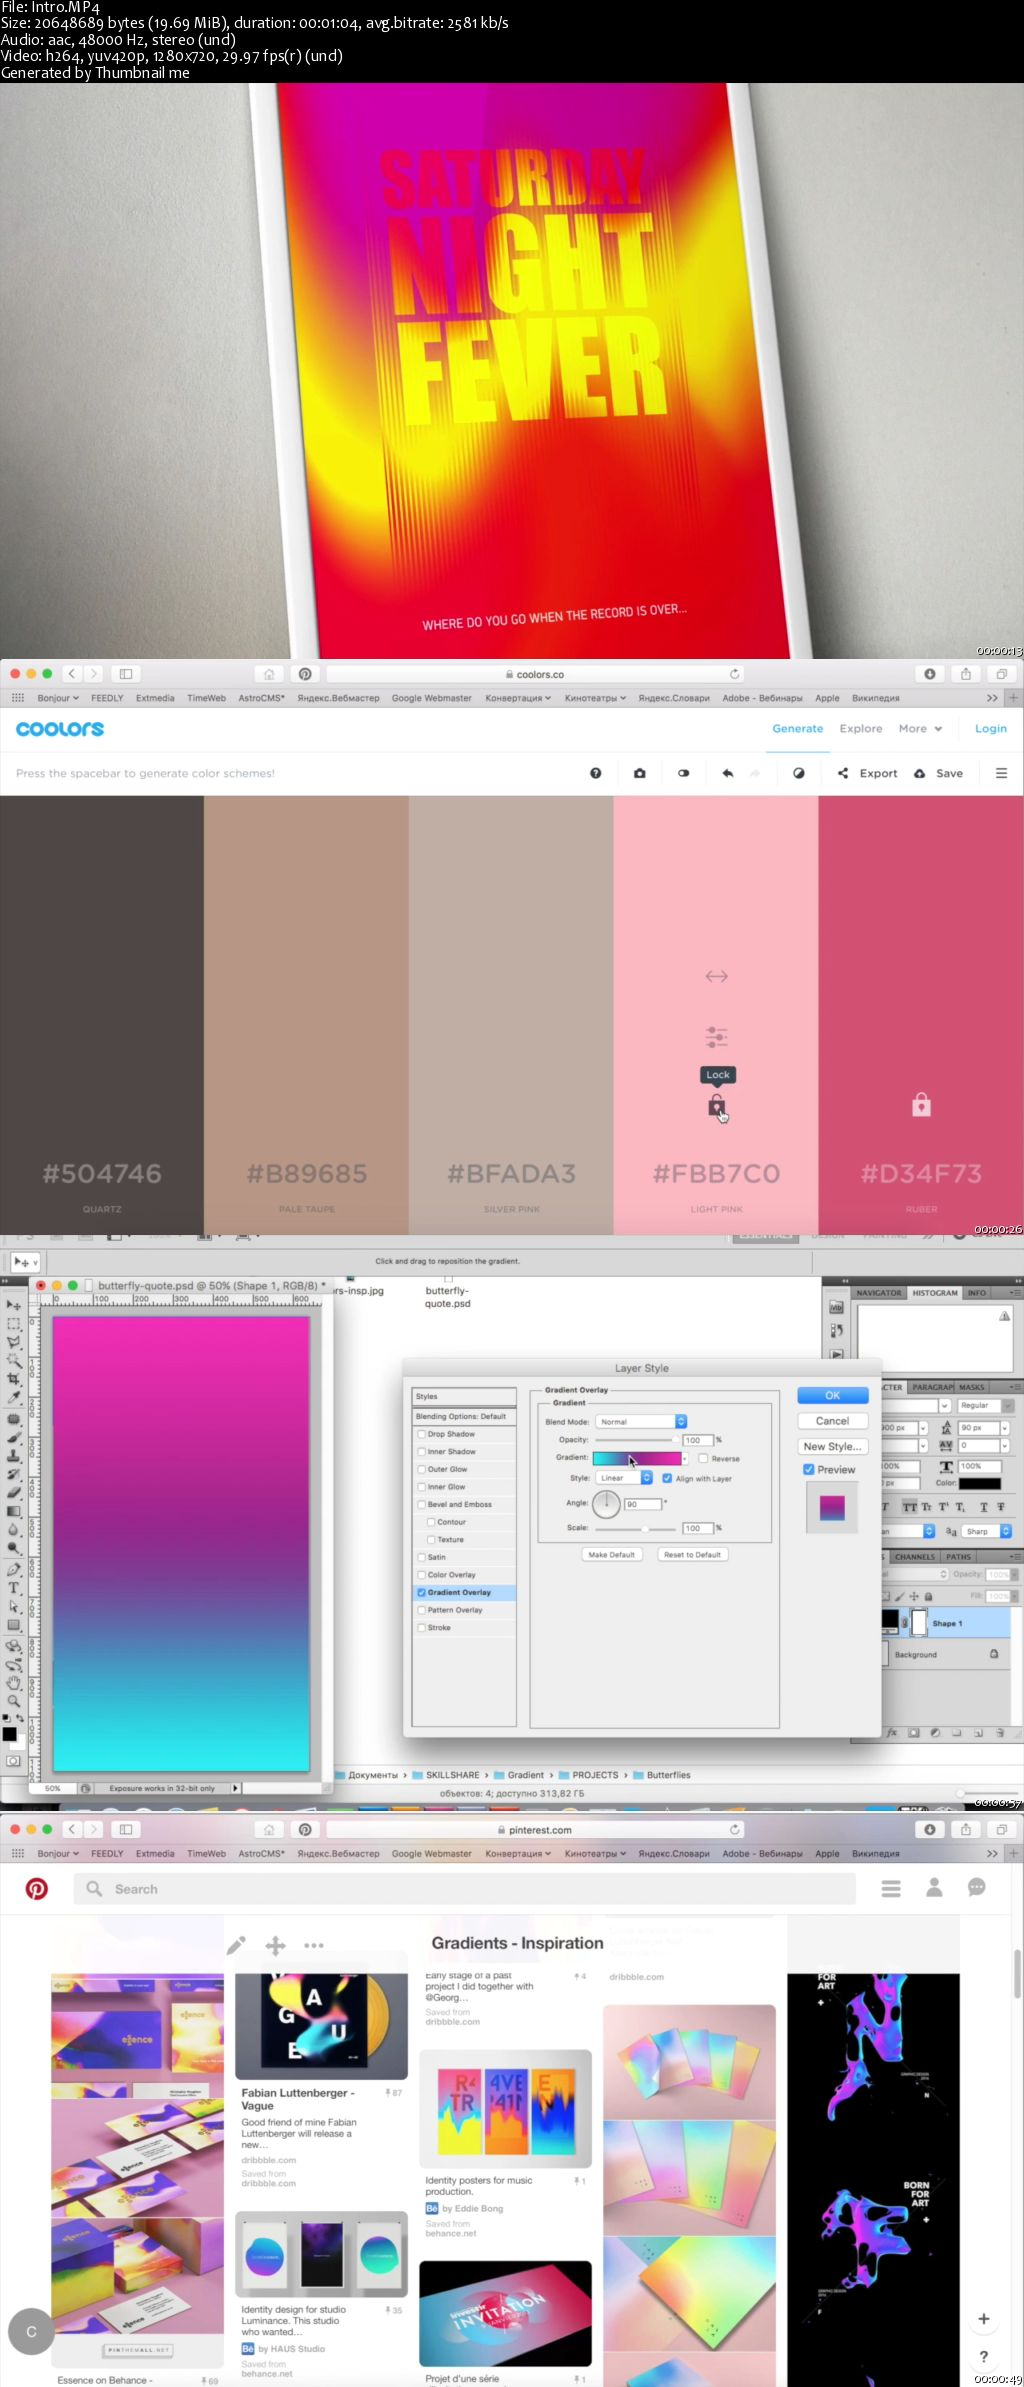 Gradient Illustration: Create an Appealing Graphics from Scratch